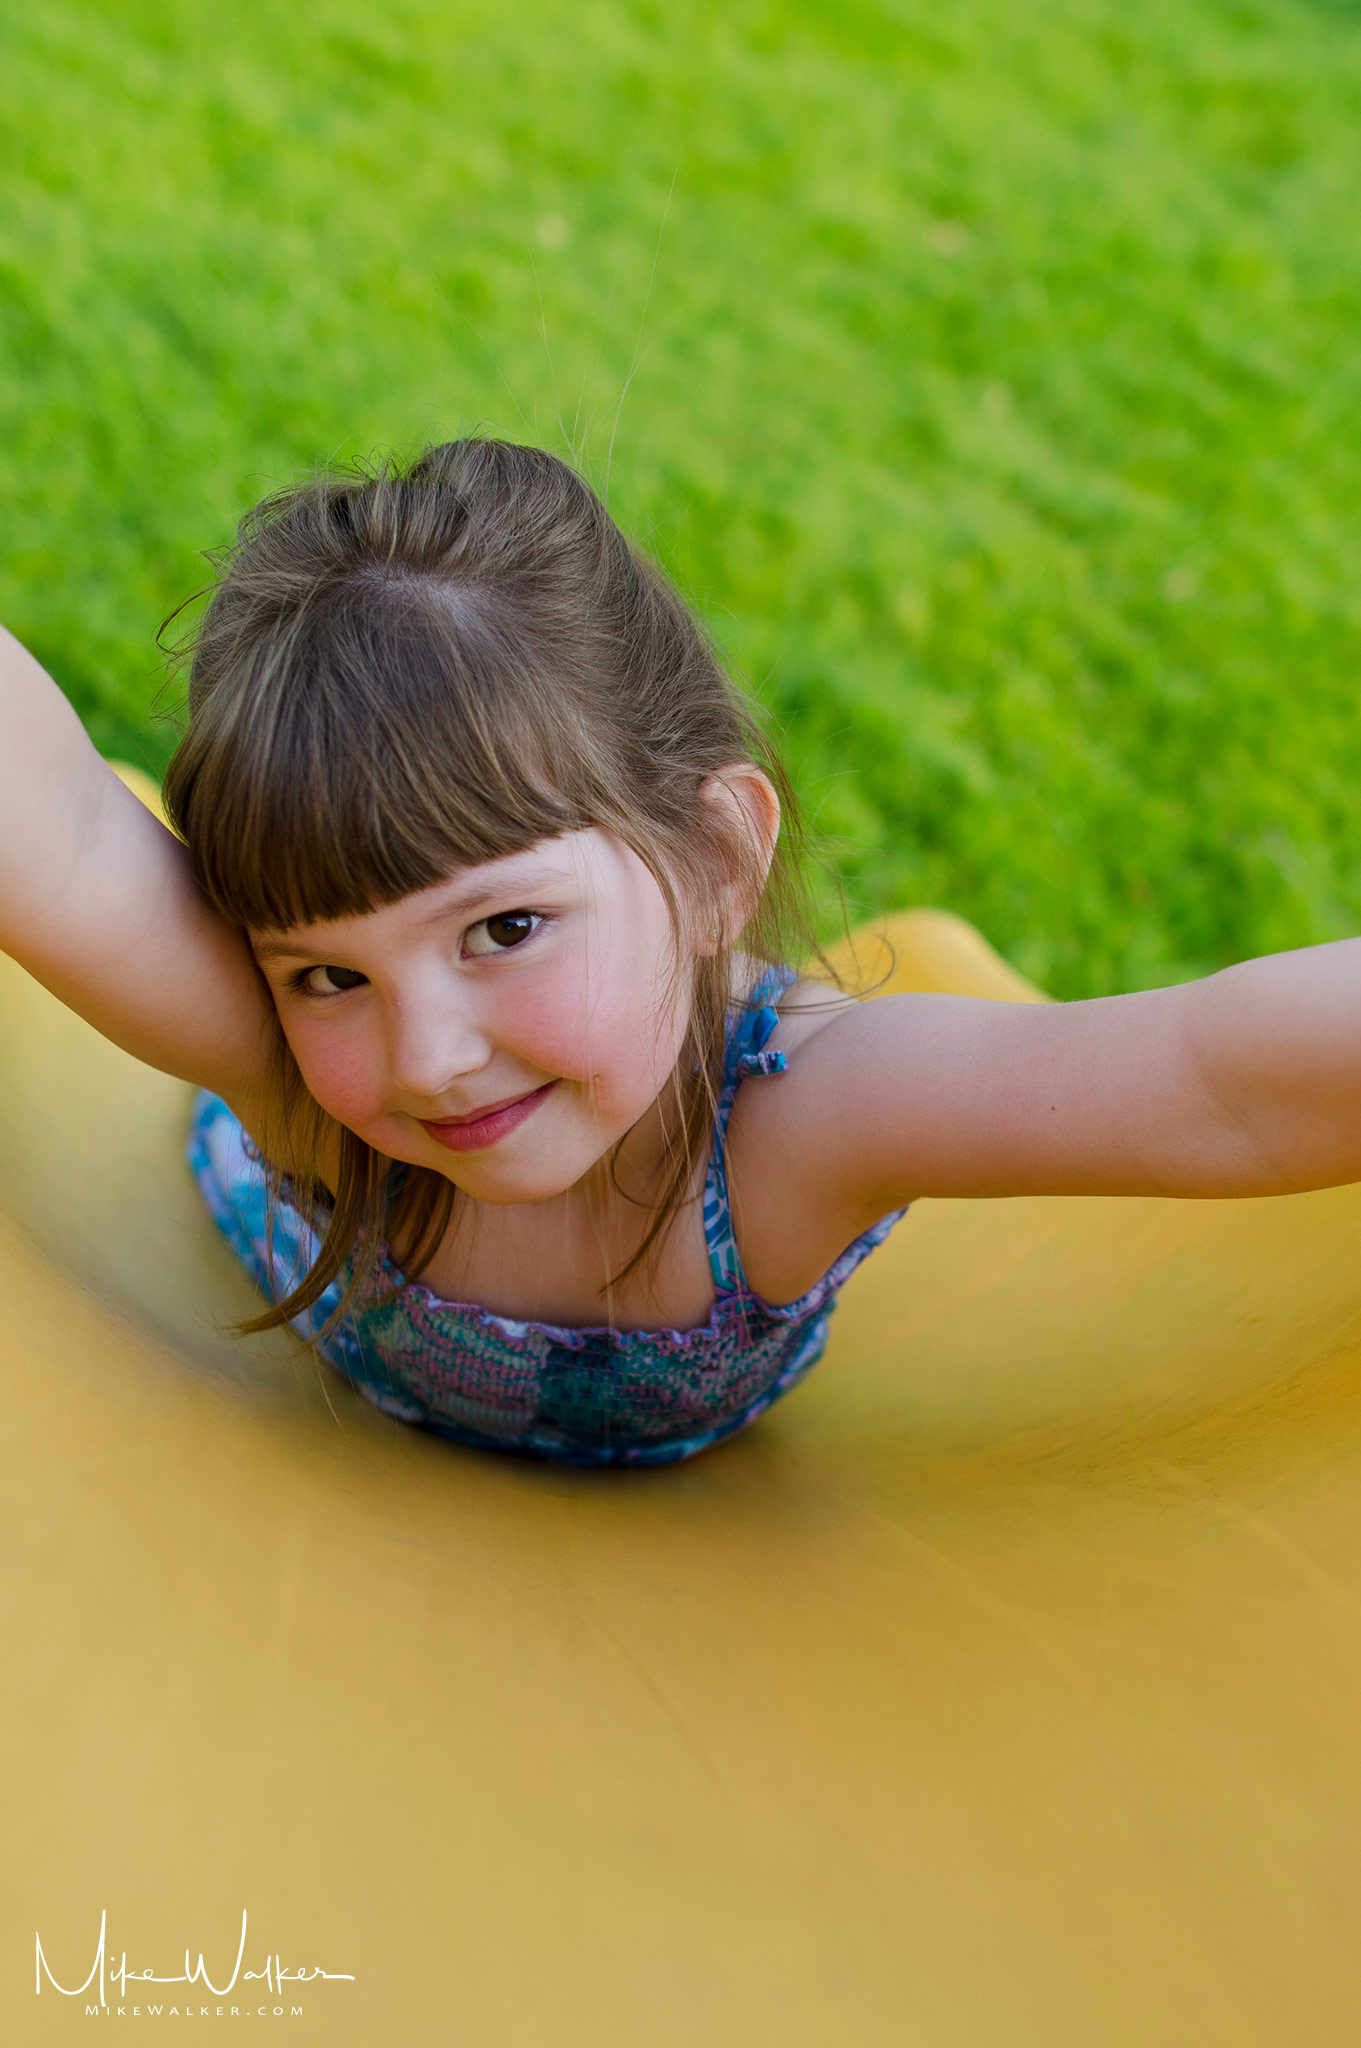 Young girl sliding down a slide. Family photography by Mike Walker.